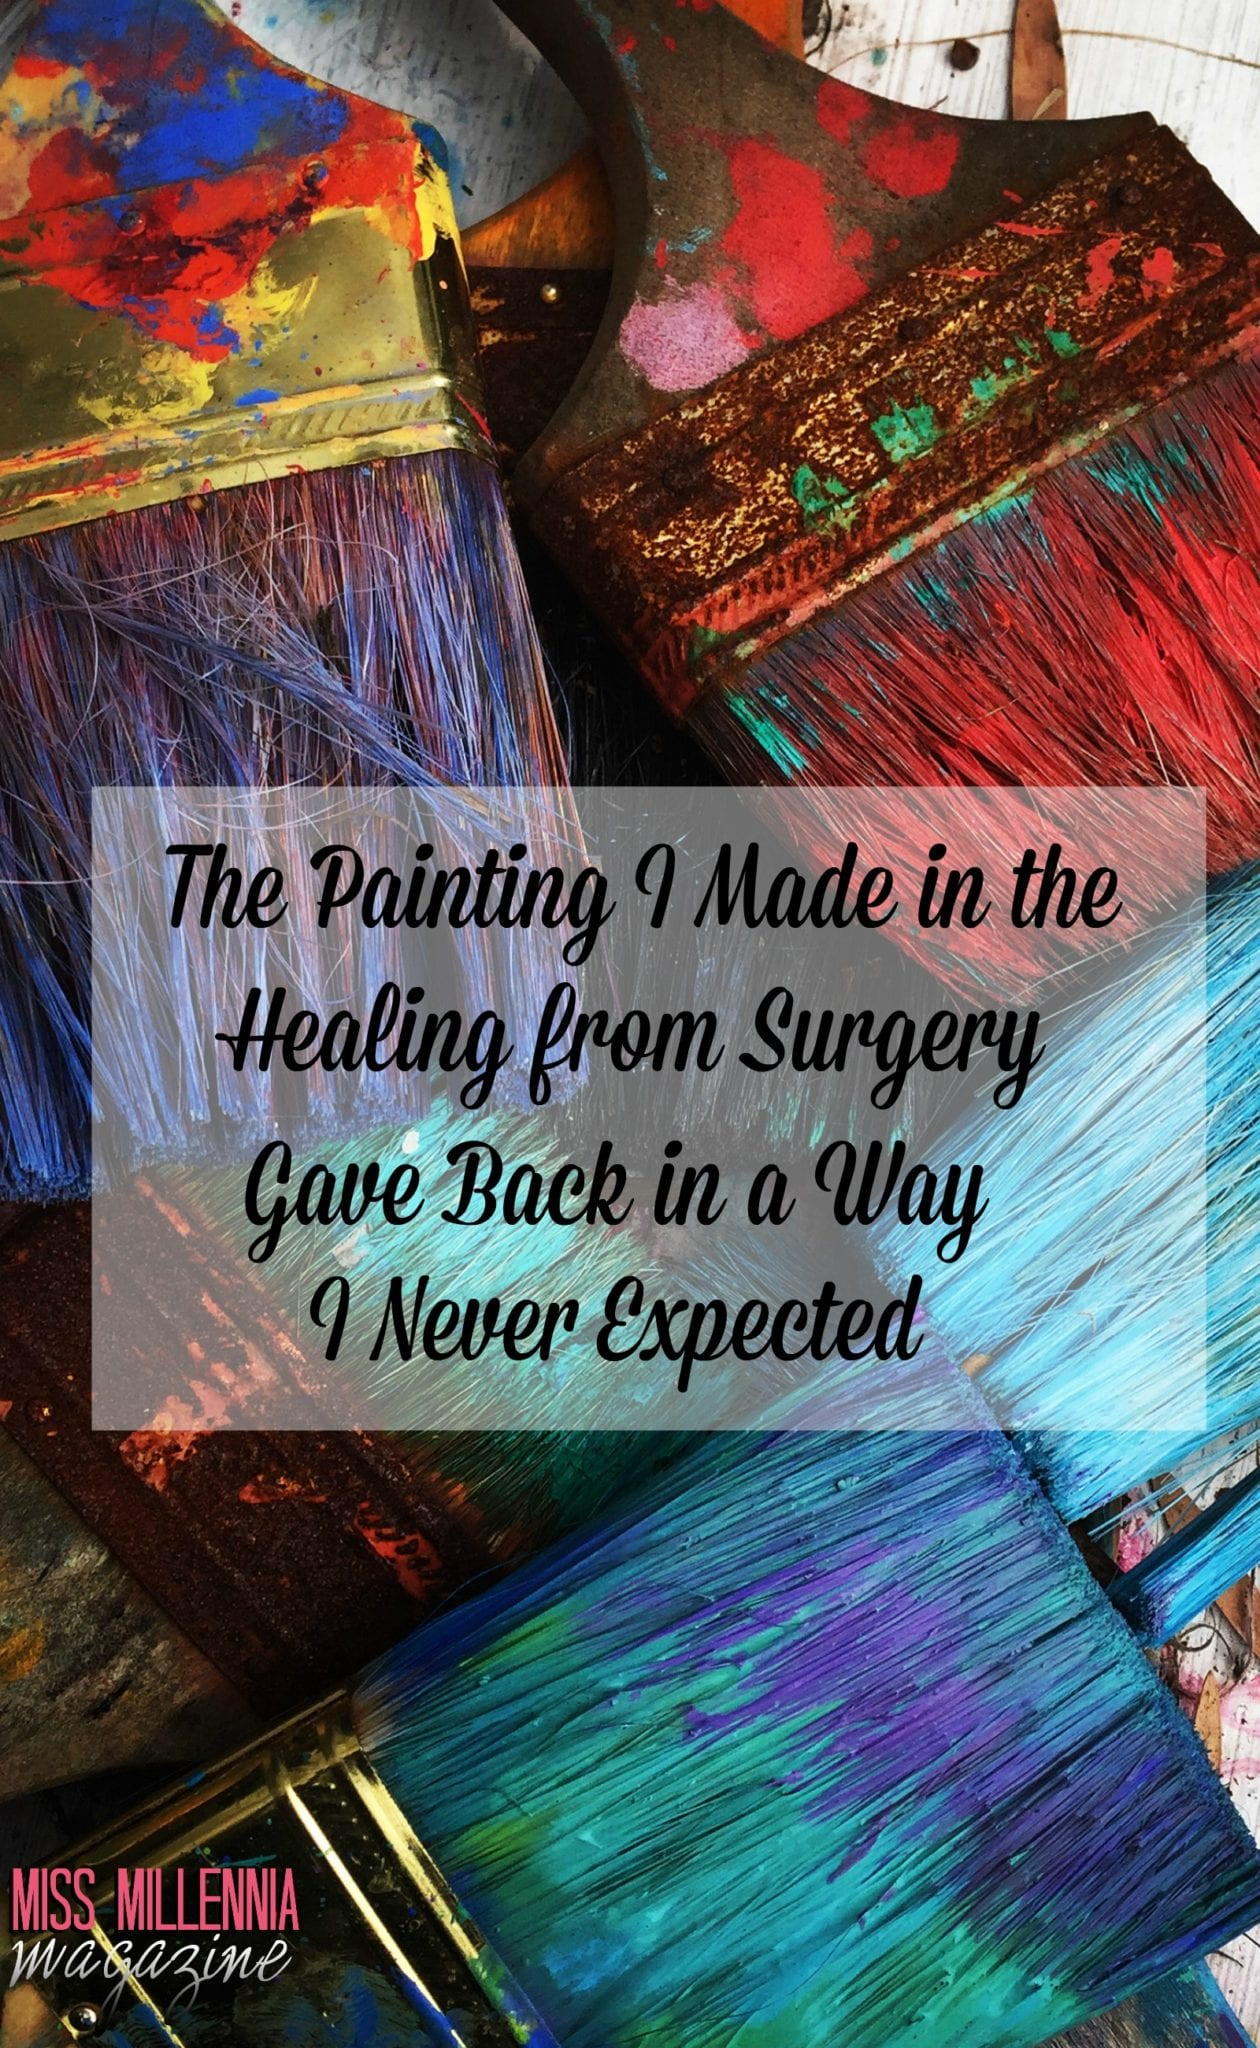 the-painting-i-made-in-the-healing-from-surgery-gave-back-in-a-way-i-never-expected